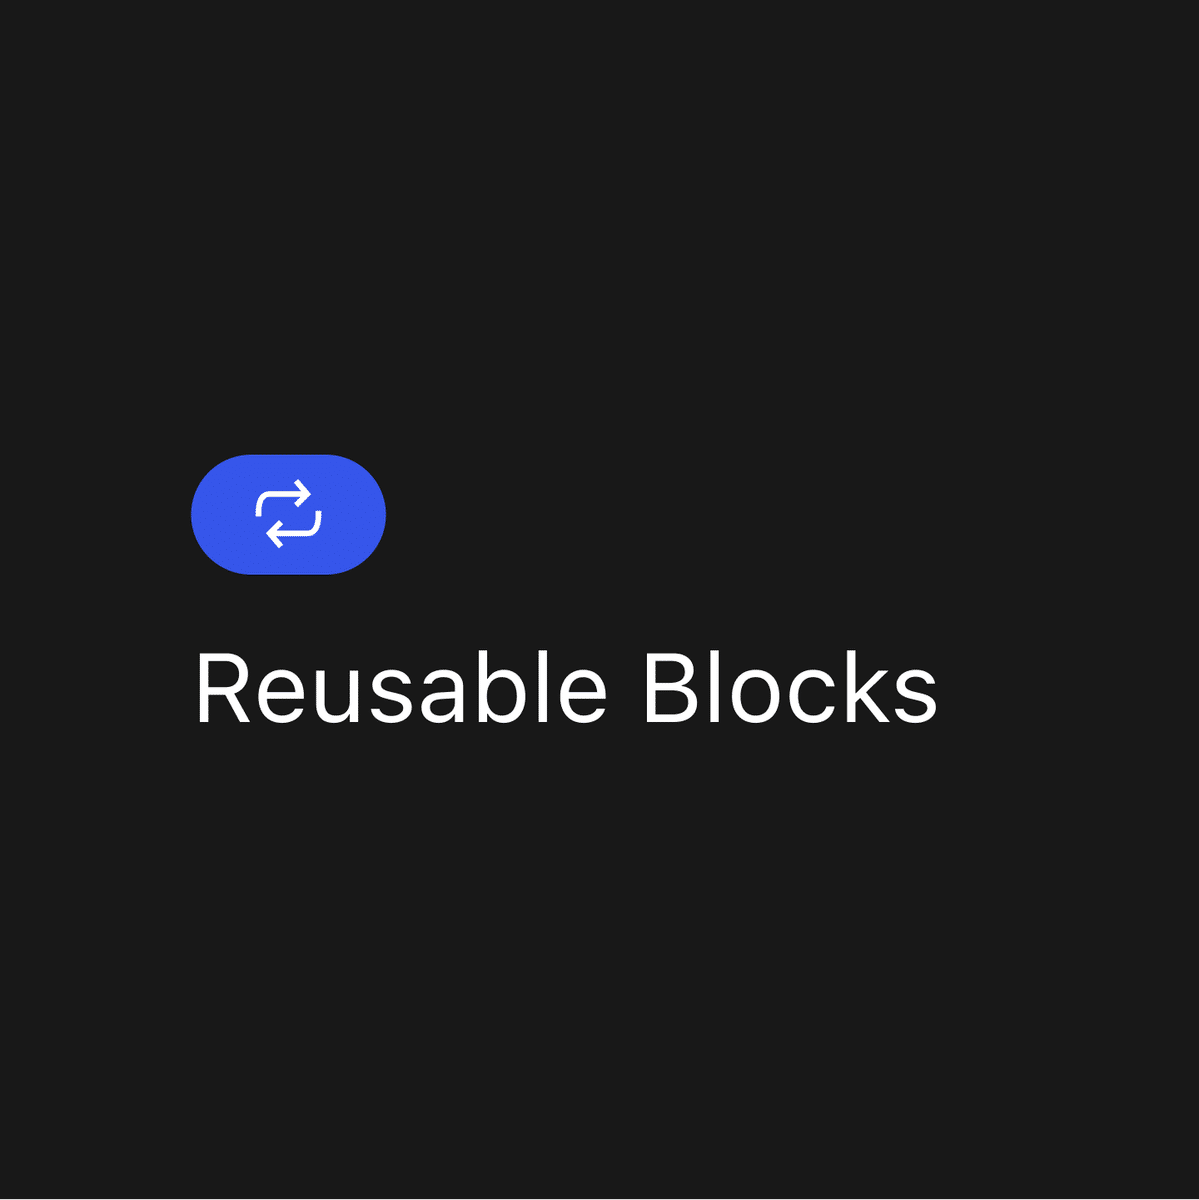 Reusable-Blocks-featured-2 Did You Know About Reusable Blocks? WPDev News